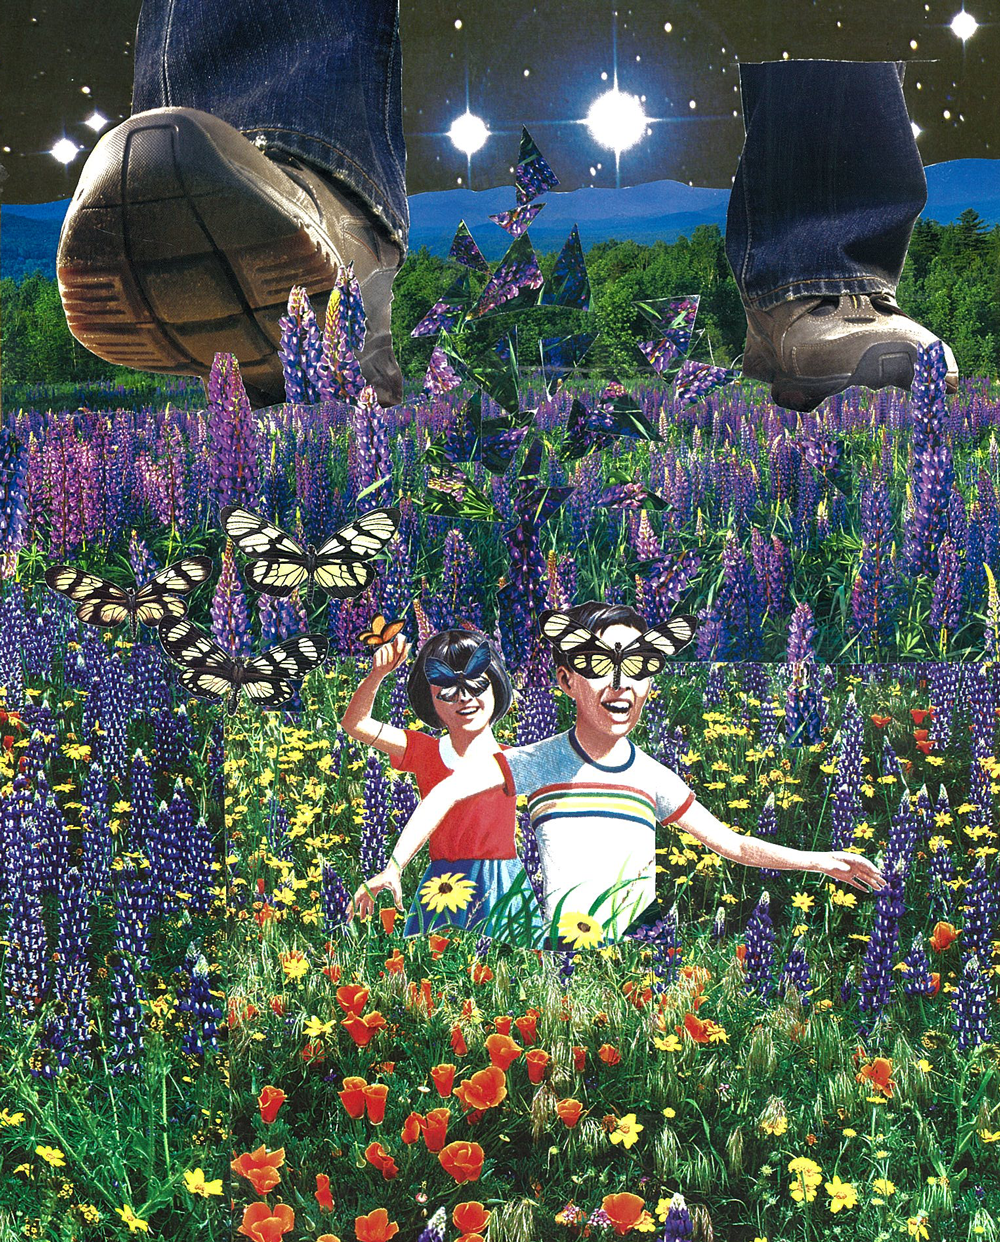 Their Imagination Chased Them Through the Fields